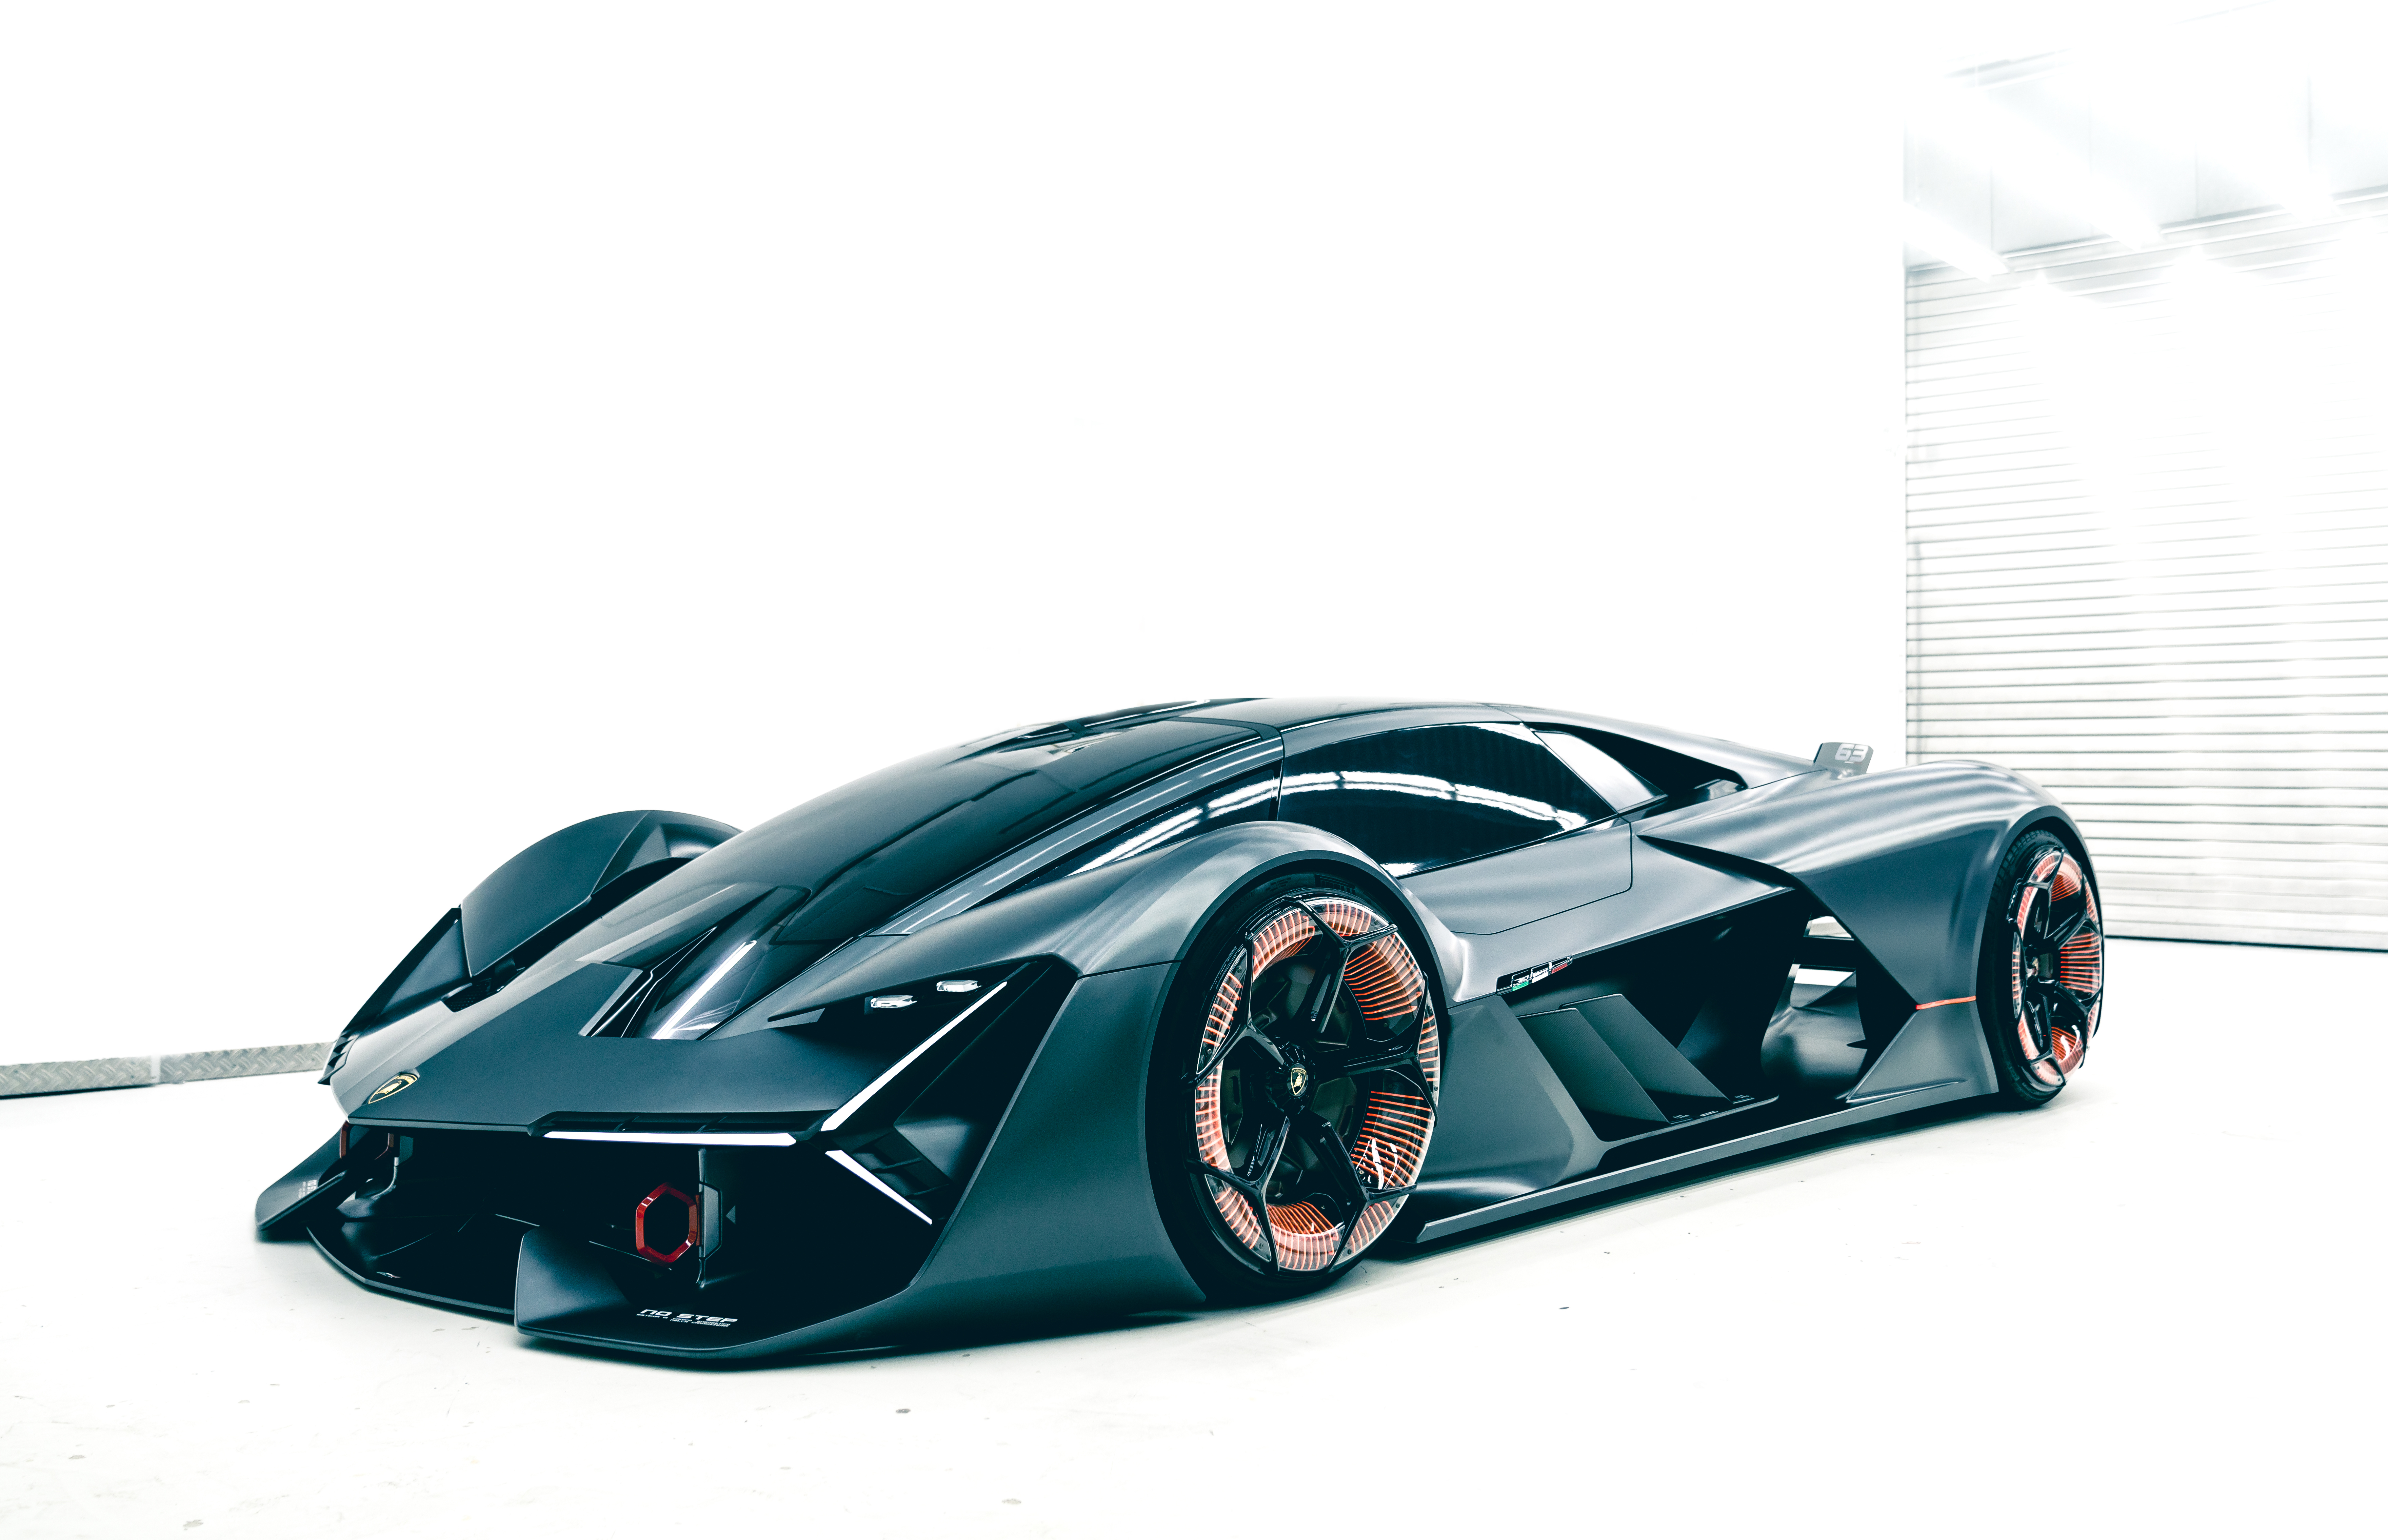 Lamborghini S New Electric Car Doesn T Need A Battery Can Self Heal Inverse